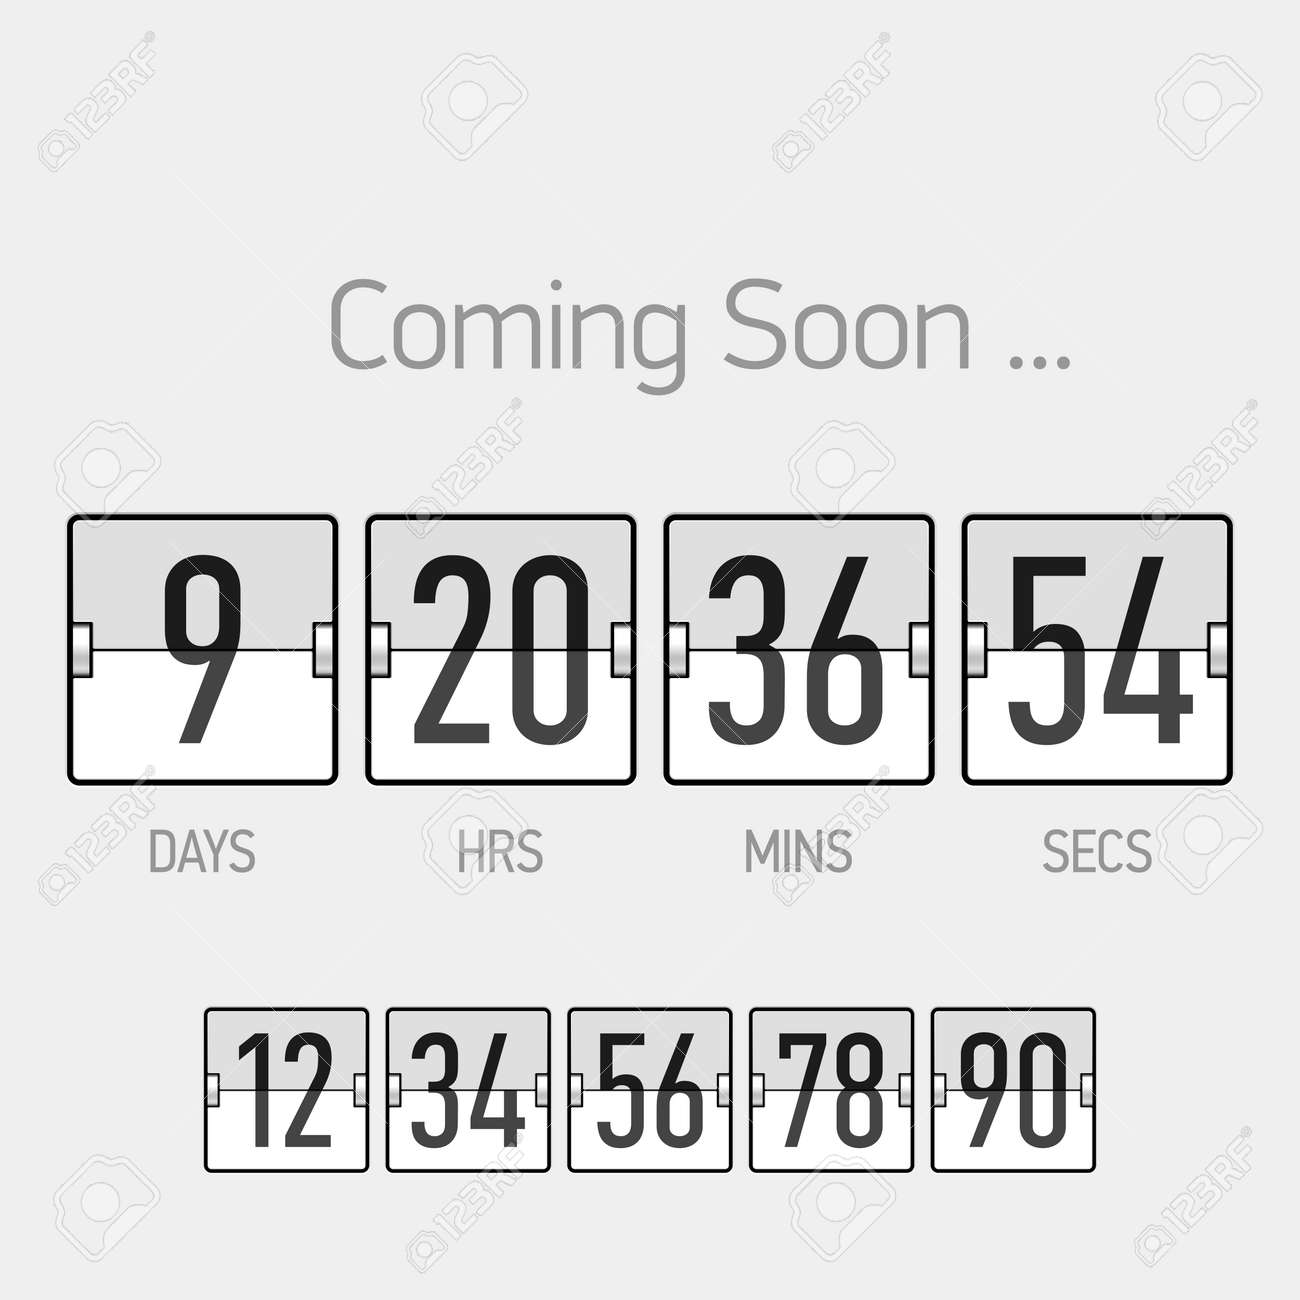 Flip Coming Soon, Countdown Timer Template Royalty Free Cliparts ...